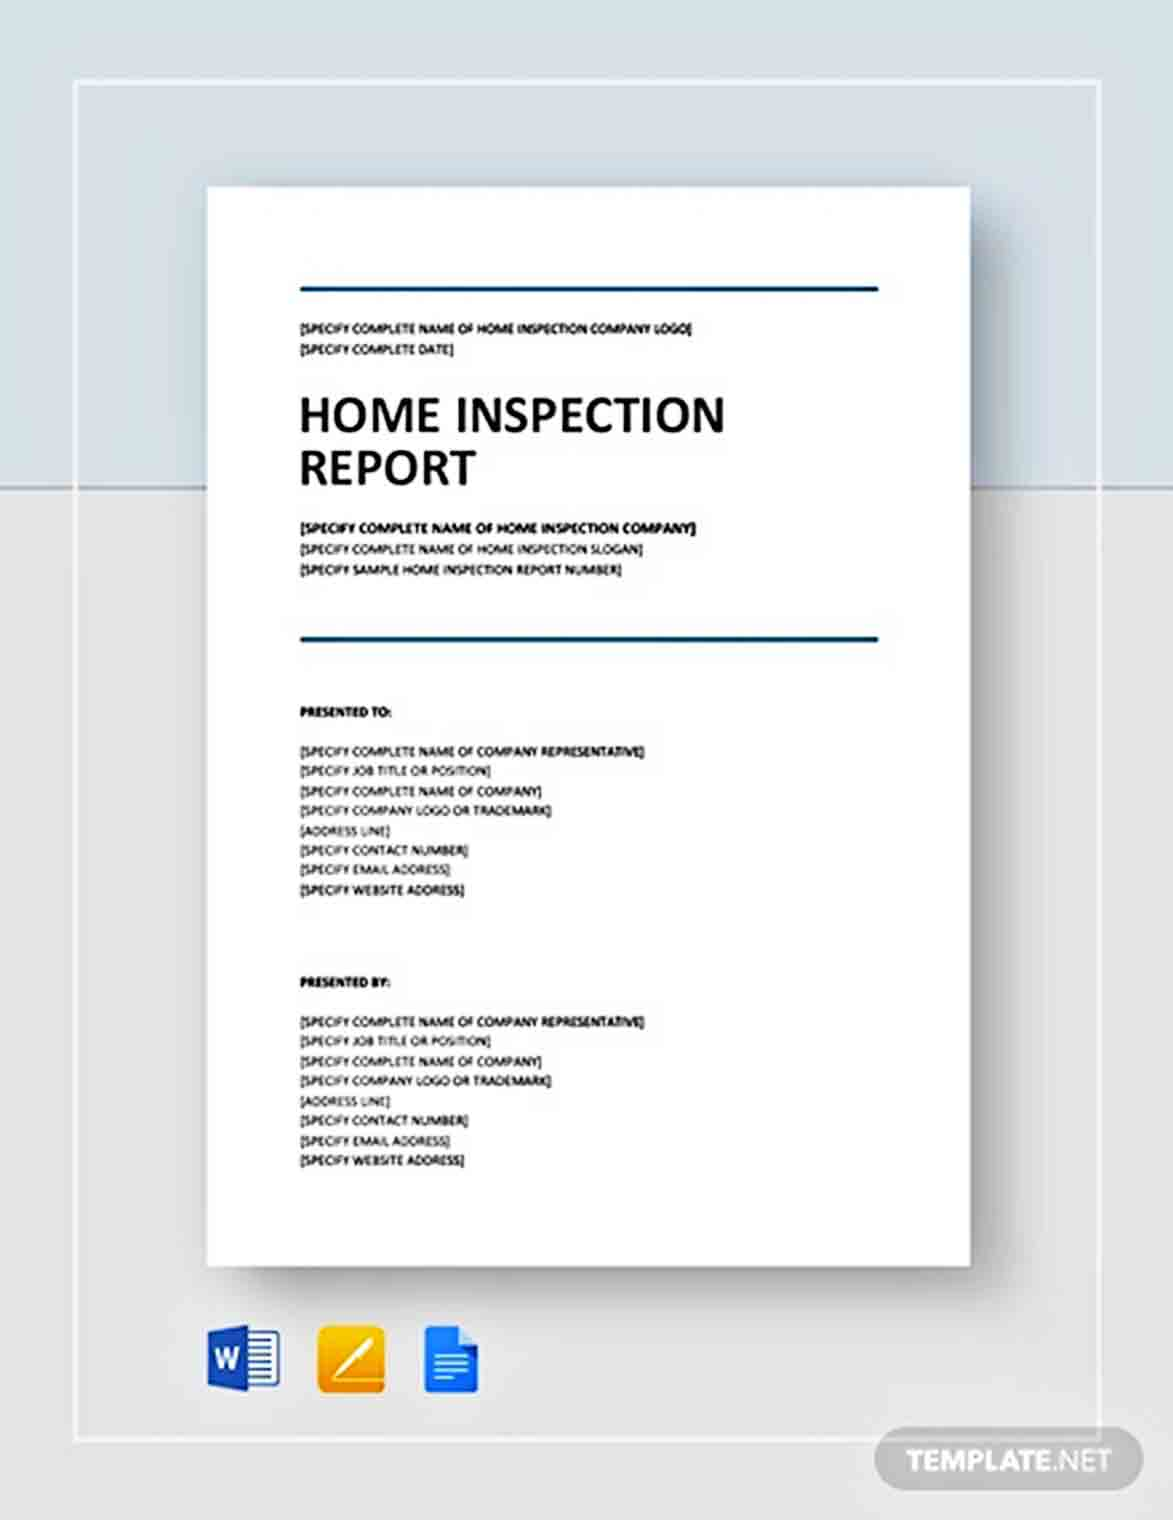 Templates Home Inspection Report 002